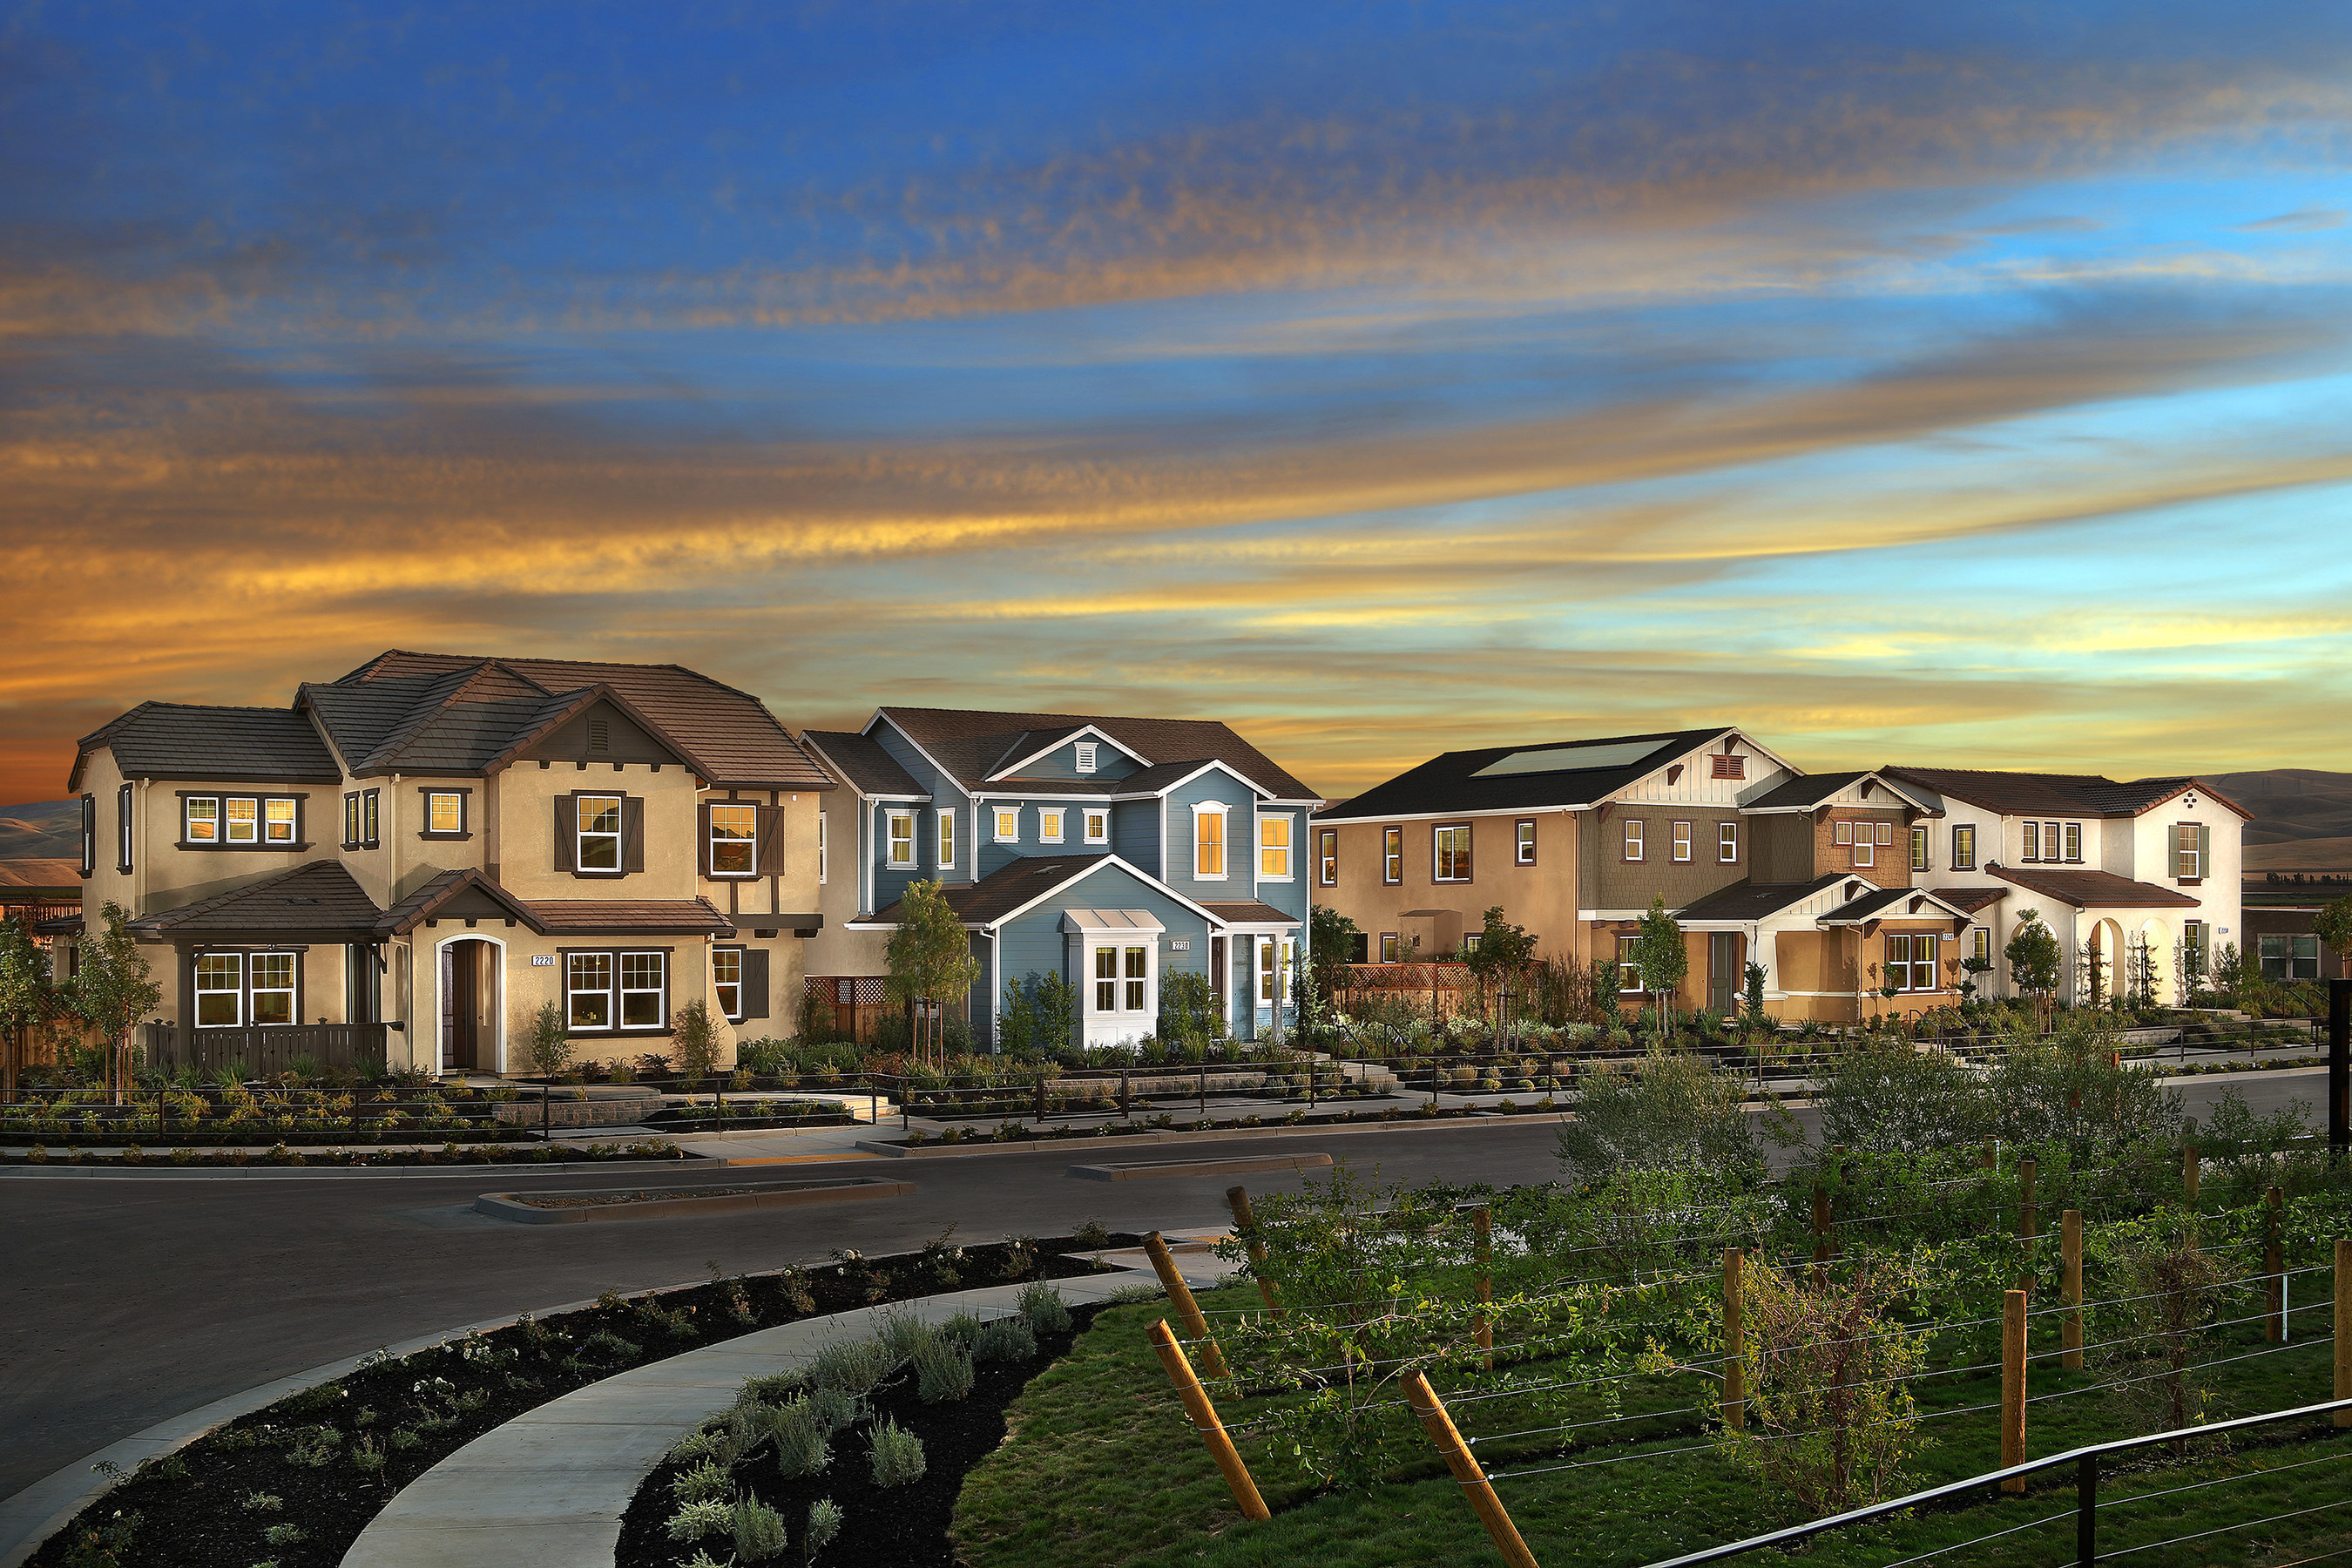 CalAtlantic Homes, one of the nation's largest homebuilders, today announced the Grand Opening of three new communities in Tracy, CA: Landmark, Legacy and Legend at Ellis. The public is invited to tour 11 all-new home designs and the Ellis community Monday-Tuesday: 10am-5pm, Wednesday: 12pm-5pm, Thursday-Sunday 10am-5pm.